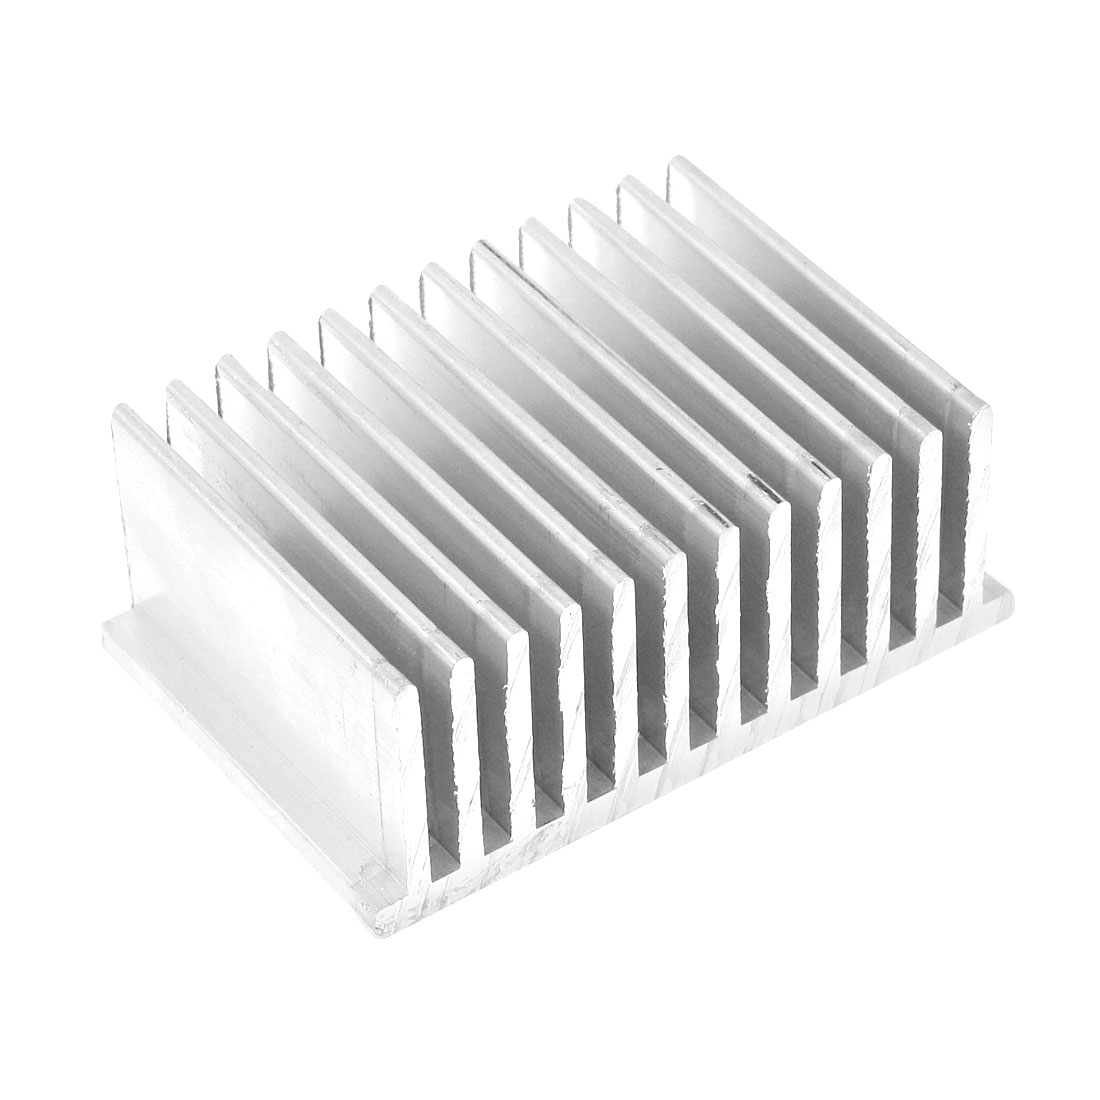 Silver White 75mmx50mmx30mm LED Heat Sink Aluminum Cooling Fin